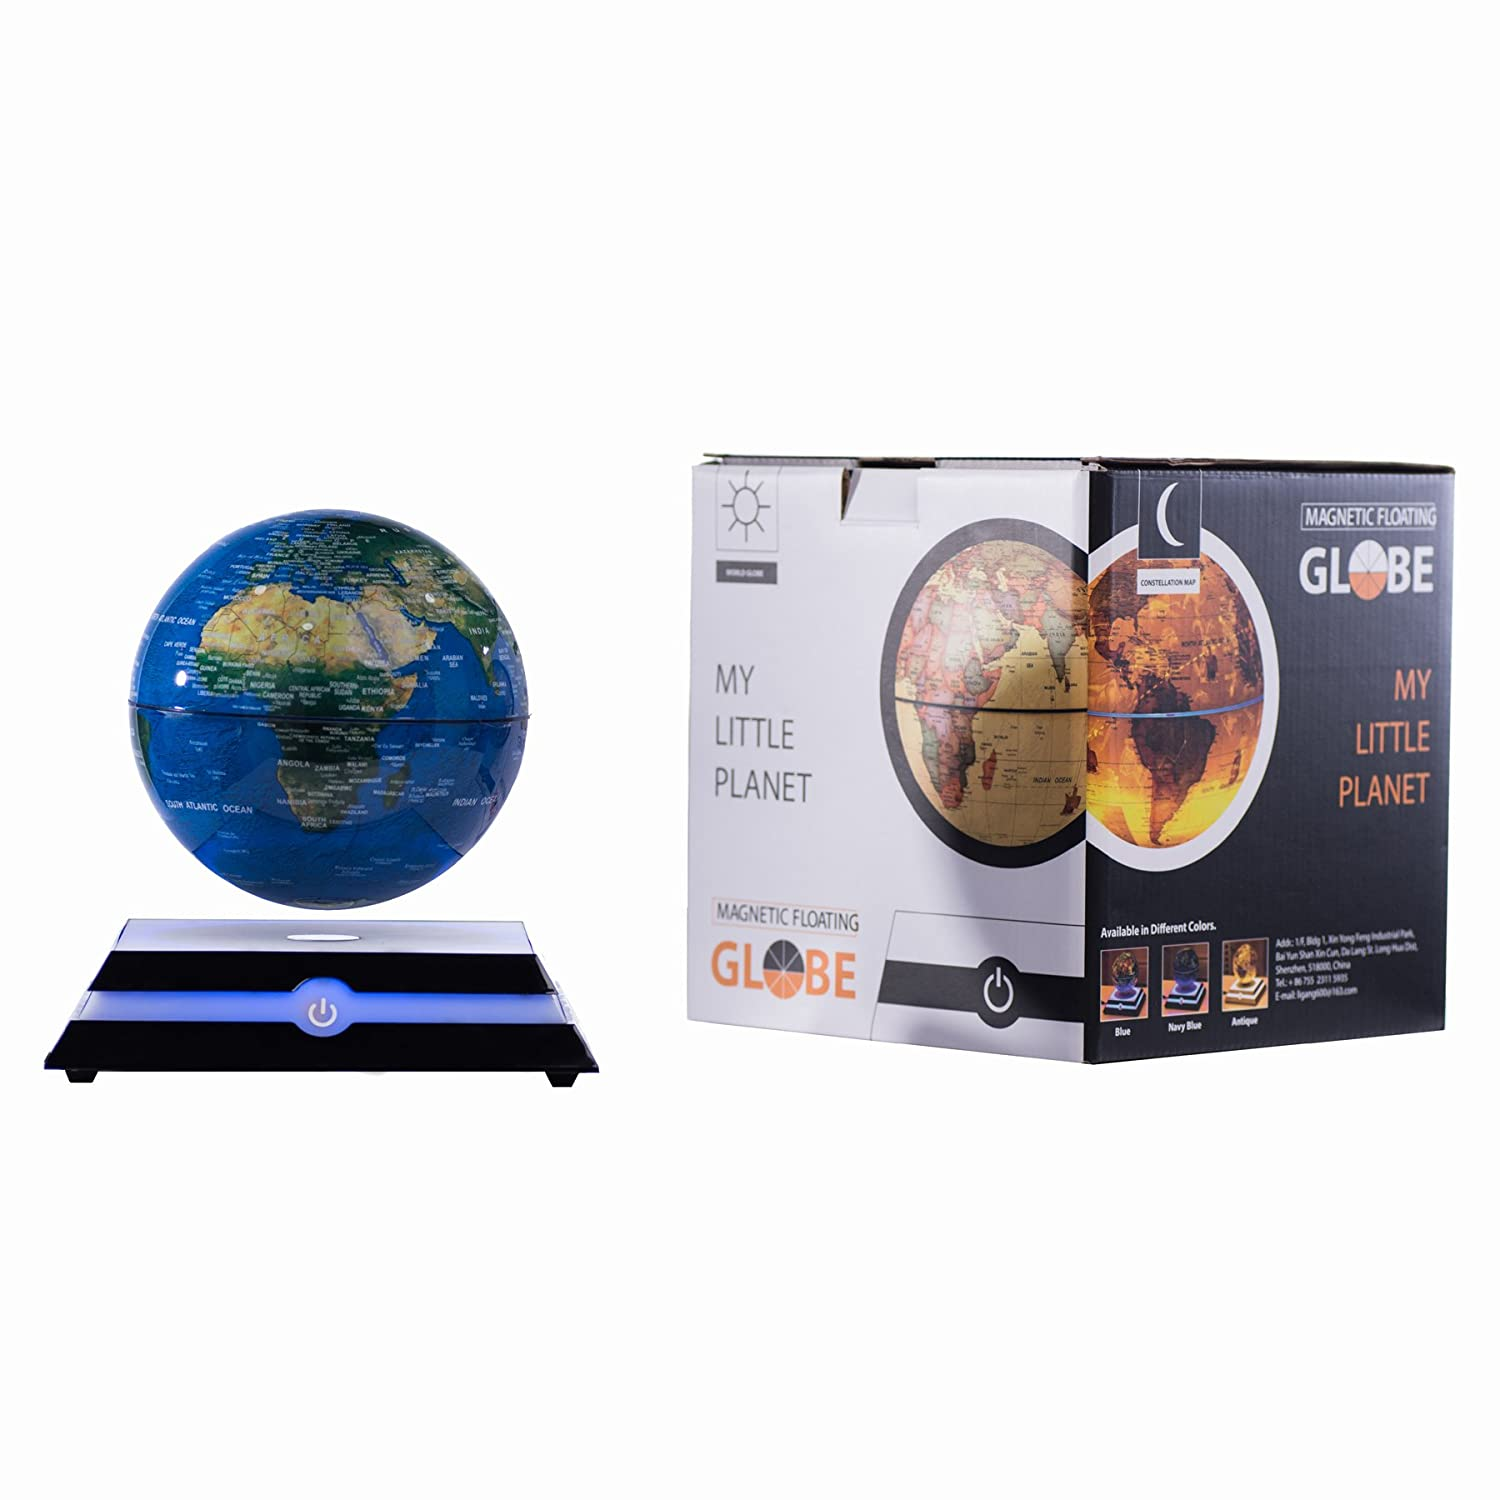 Magnetic floating bed a 1 6 million - Amazon Com Magnetic Levitating Floating Globe With Led Light Rotating World Map And Constellation In 6 Anti Gravity Globe Navy Blue Office Products